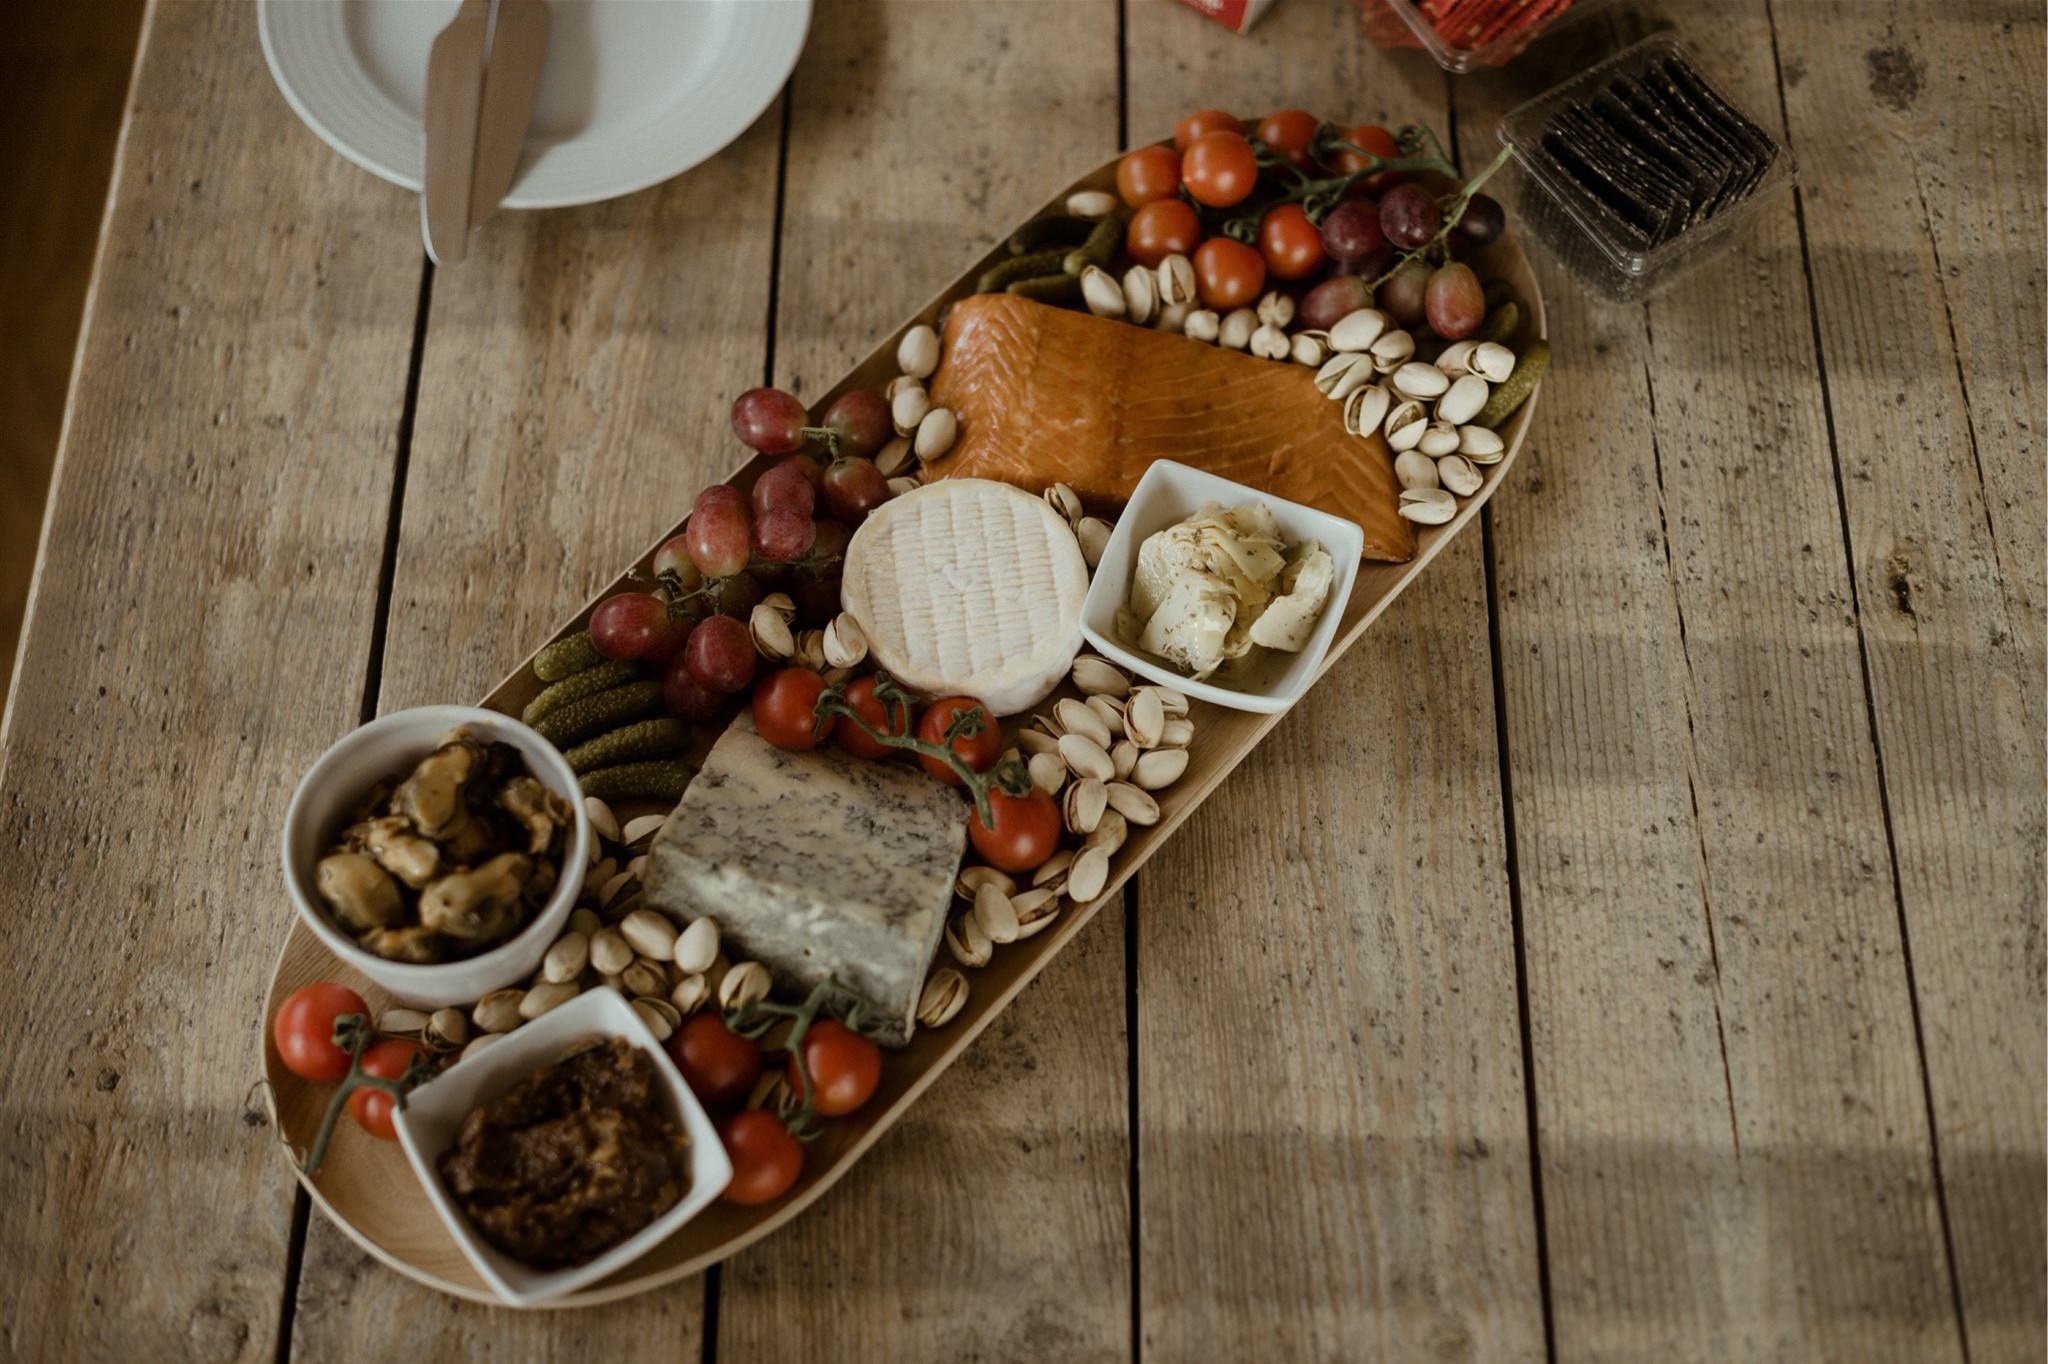 Plate of snacks on a wooden table